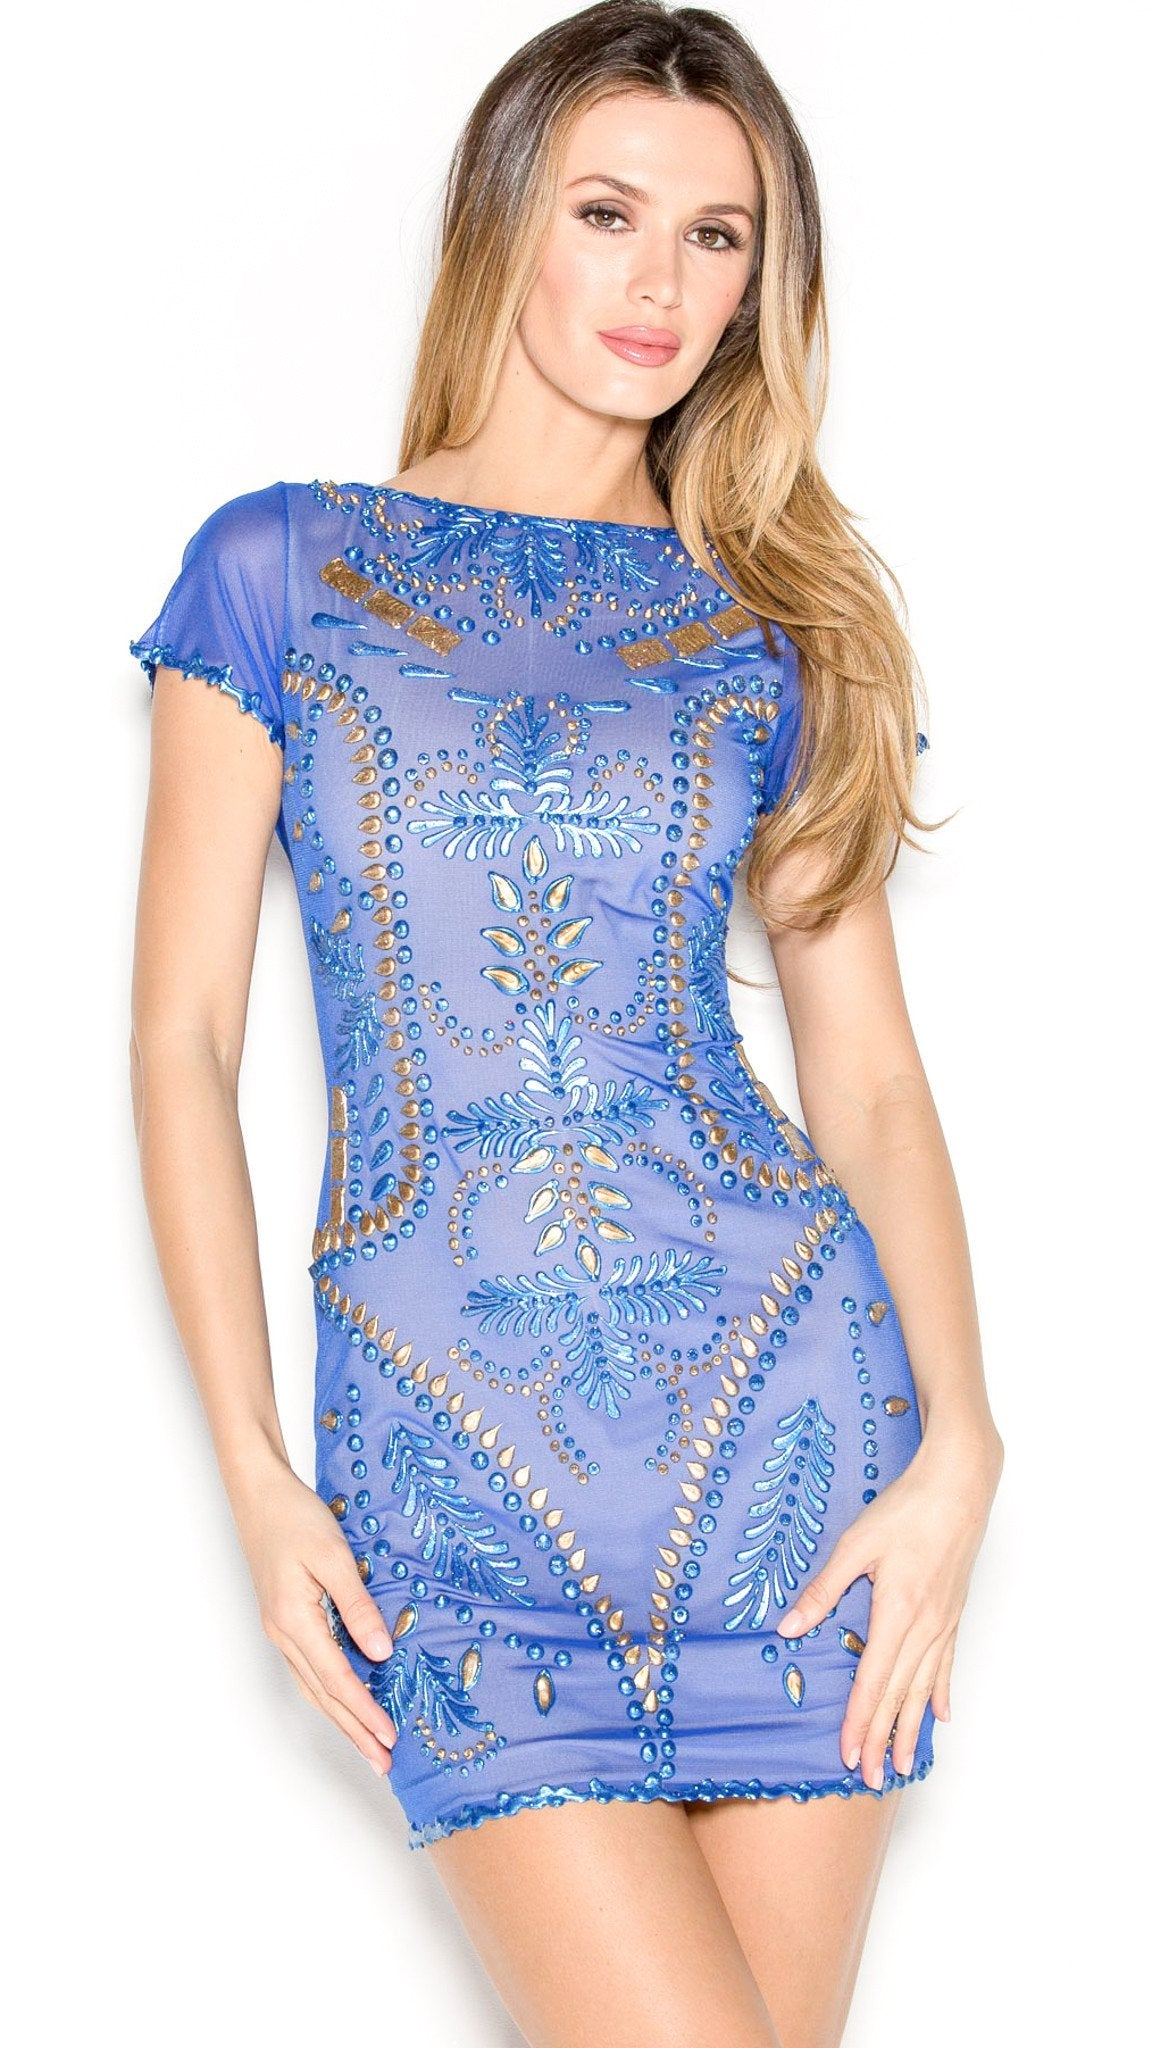 MEITAL DRESS IN ROYAL BLUE WITH GOLD